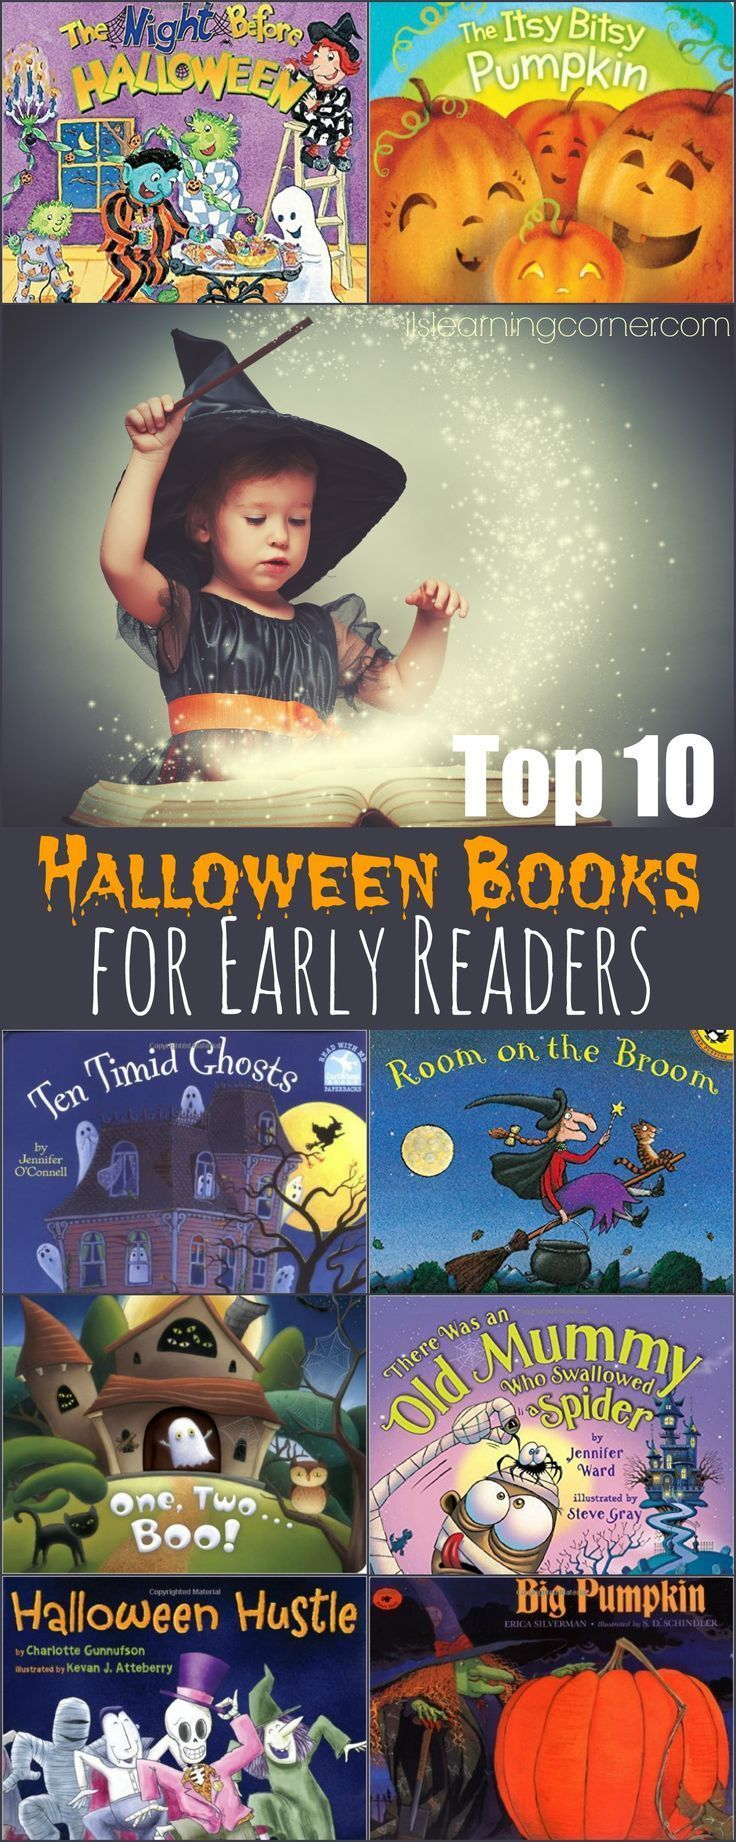 Top 10 Books for Halloween to help Early Readers | ilslearningcorner.com